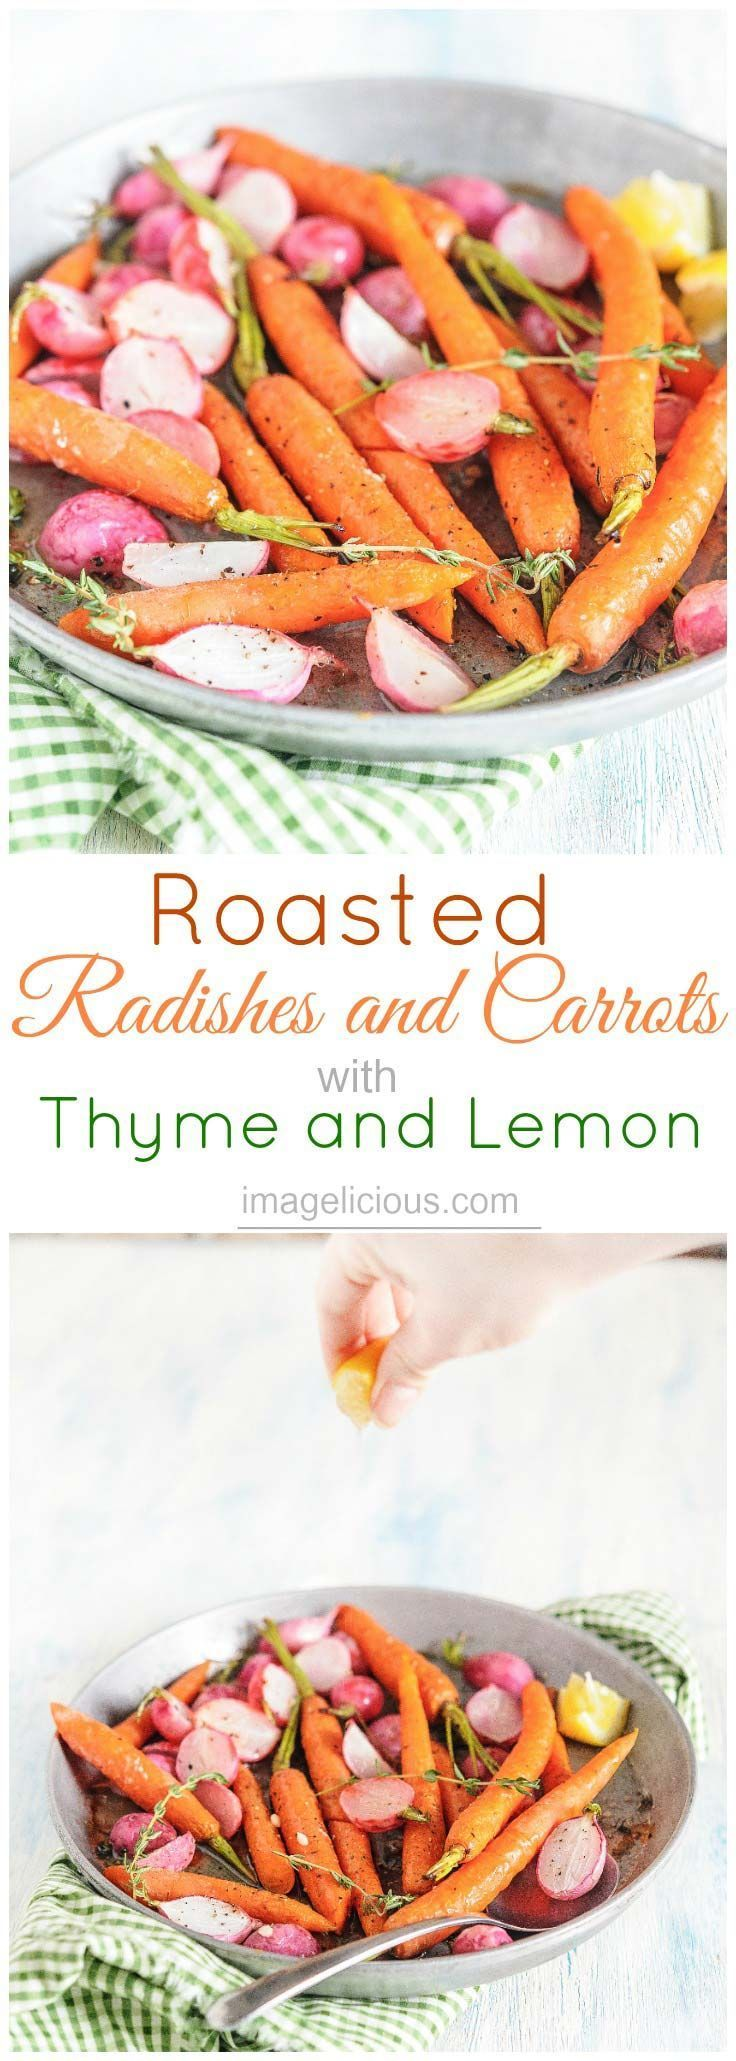 Roasted Radishes and Carrots with Thyme and Lemon Recipe